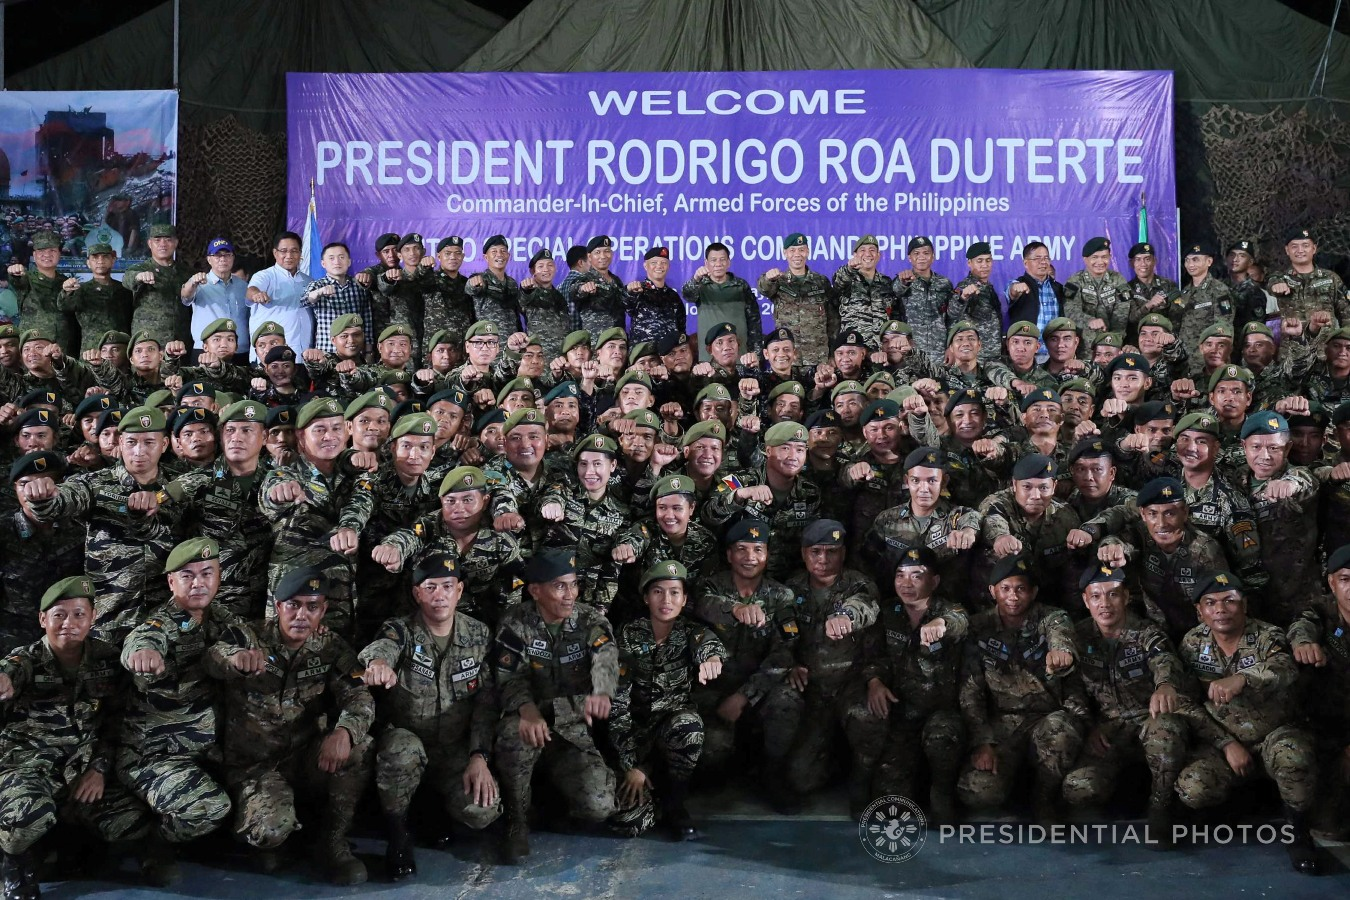 FILE: President Rodrigo Roa Duterte flashes his signature pose in a photo opportunity with the officials and personnel from the Light Reaction Regiment, Special Operation Command, First Scout Ranger Regiment, and Special Forces Regiment Airborne during his visit at Fort Magsaysay in Palayan City, Nueva Ecija on November 22, 2017. ACE MORANDANTE/PRESIDENTIAL PHOTO